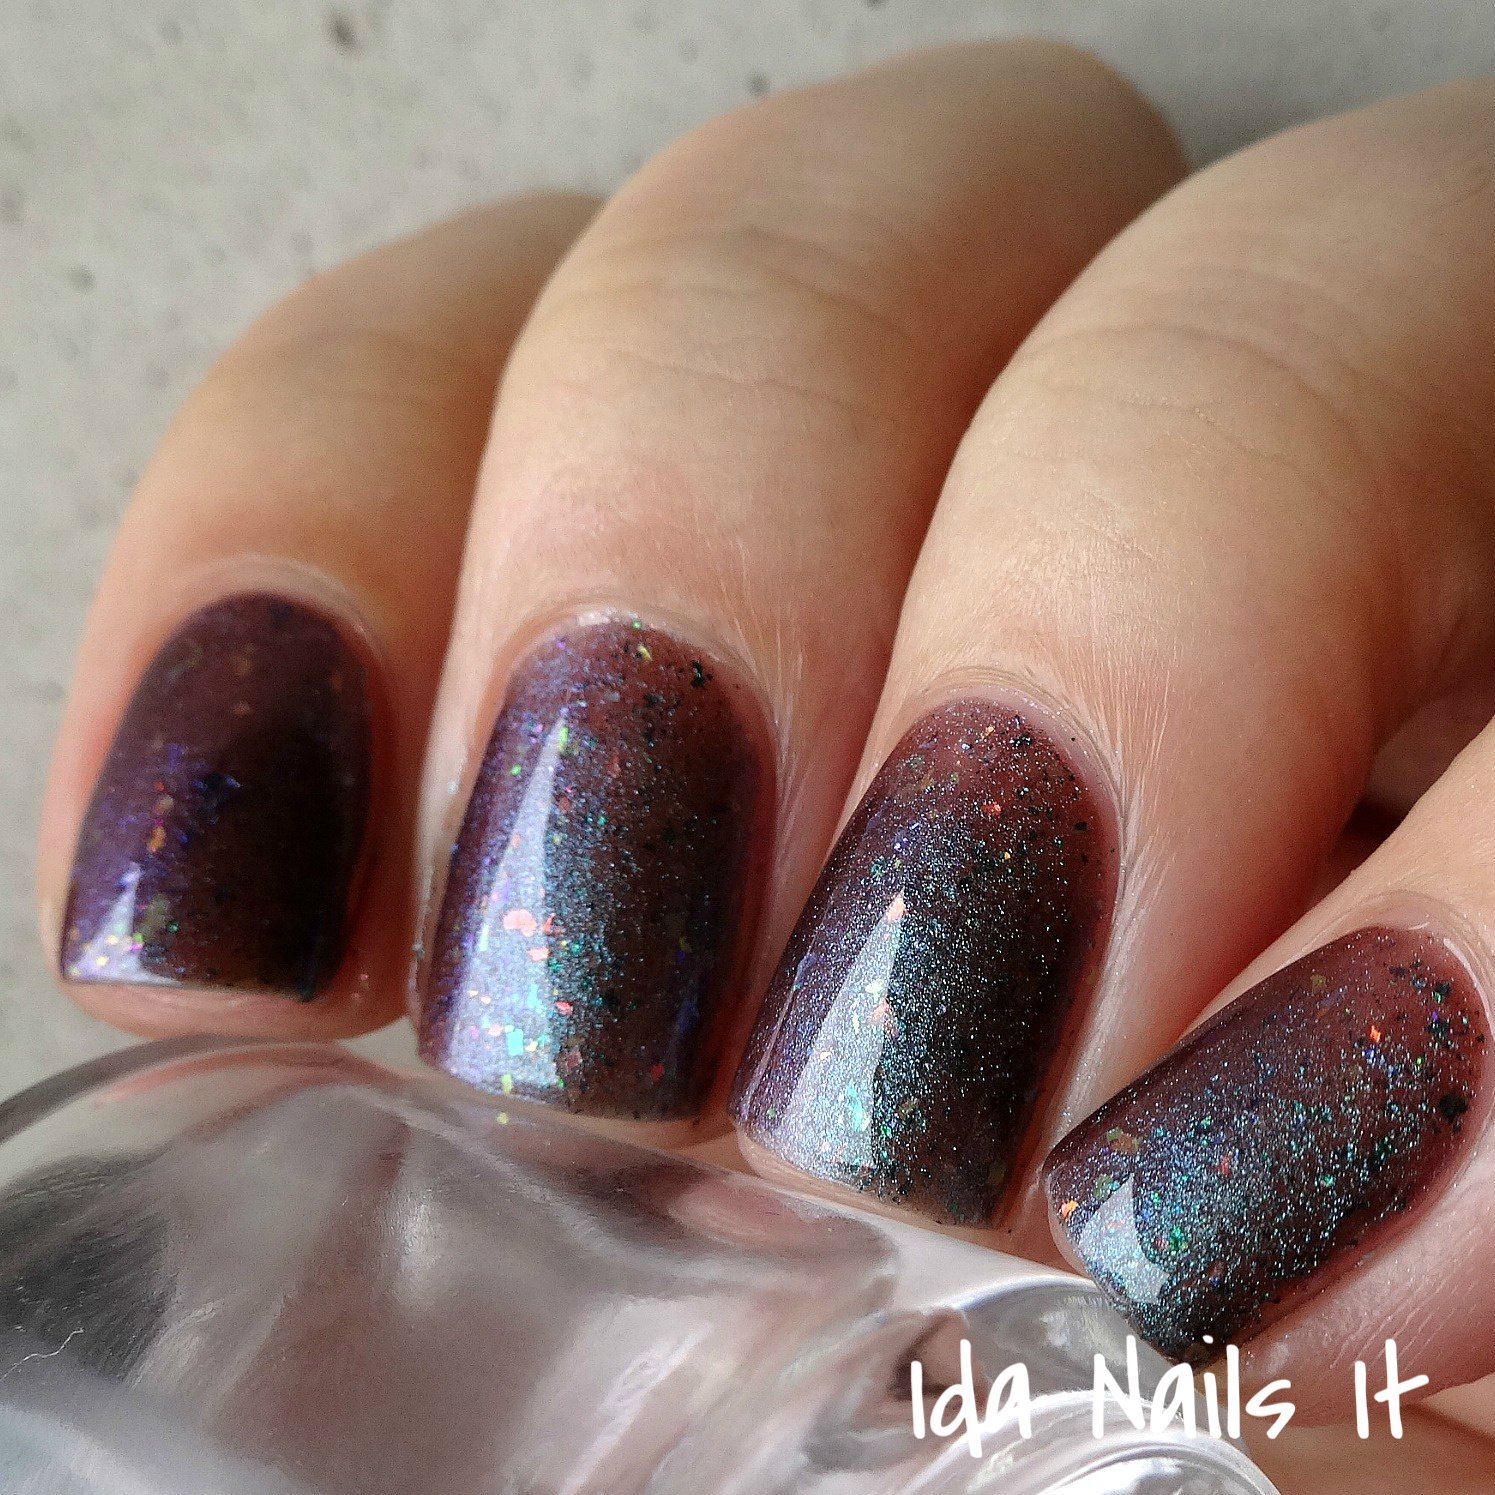 e7838f8e7cf28 Ida Nails It  Color4Nails Presents Lilypad Lacquer  Swatches and Review